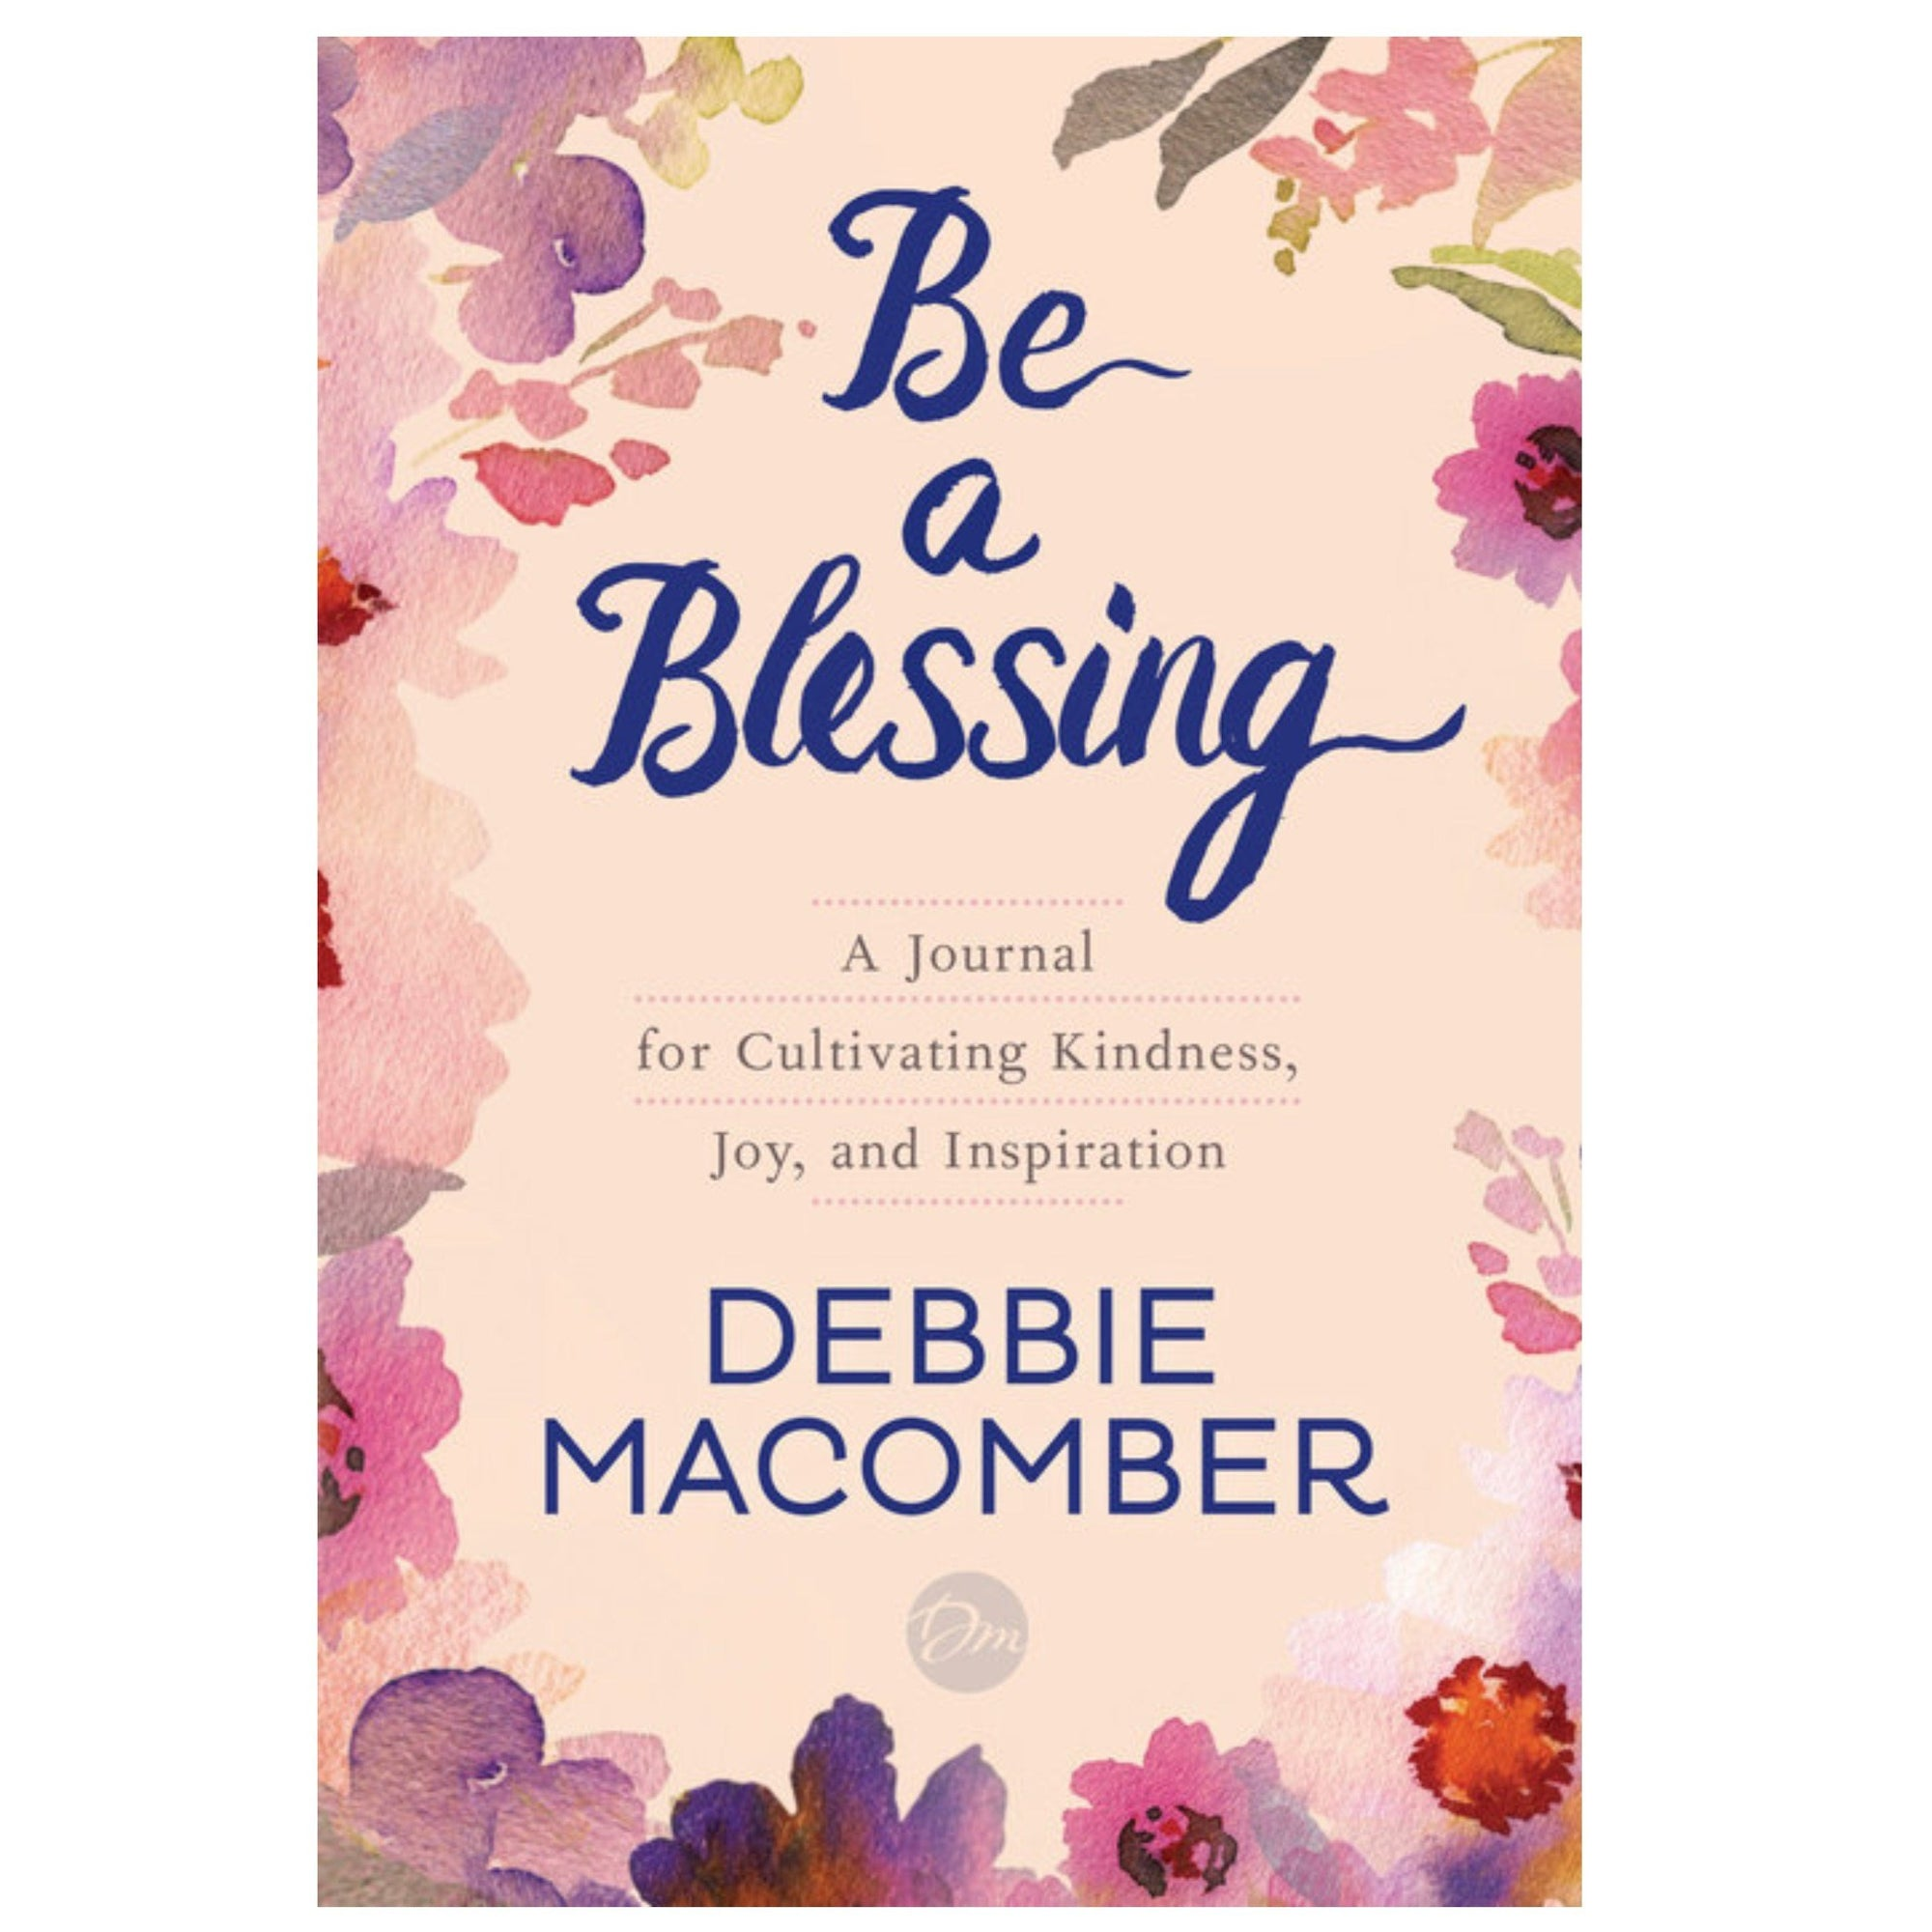 Be a Blessing - A Journal for Cultivating Kindness, Joy, and Inspiration